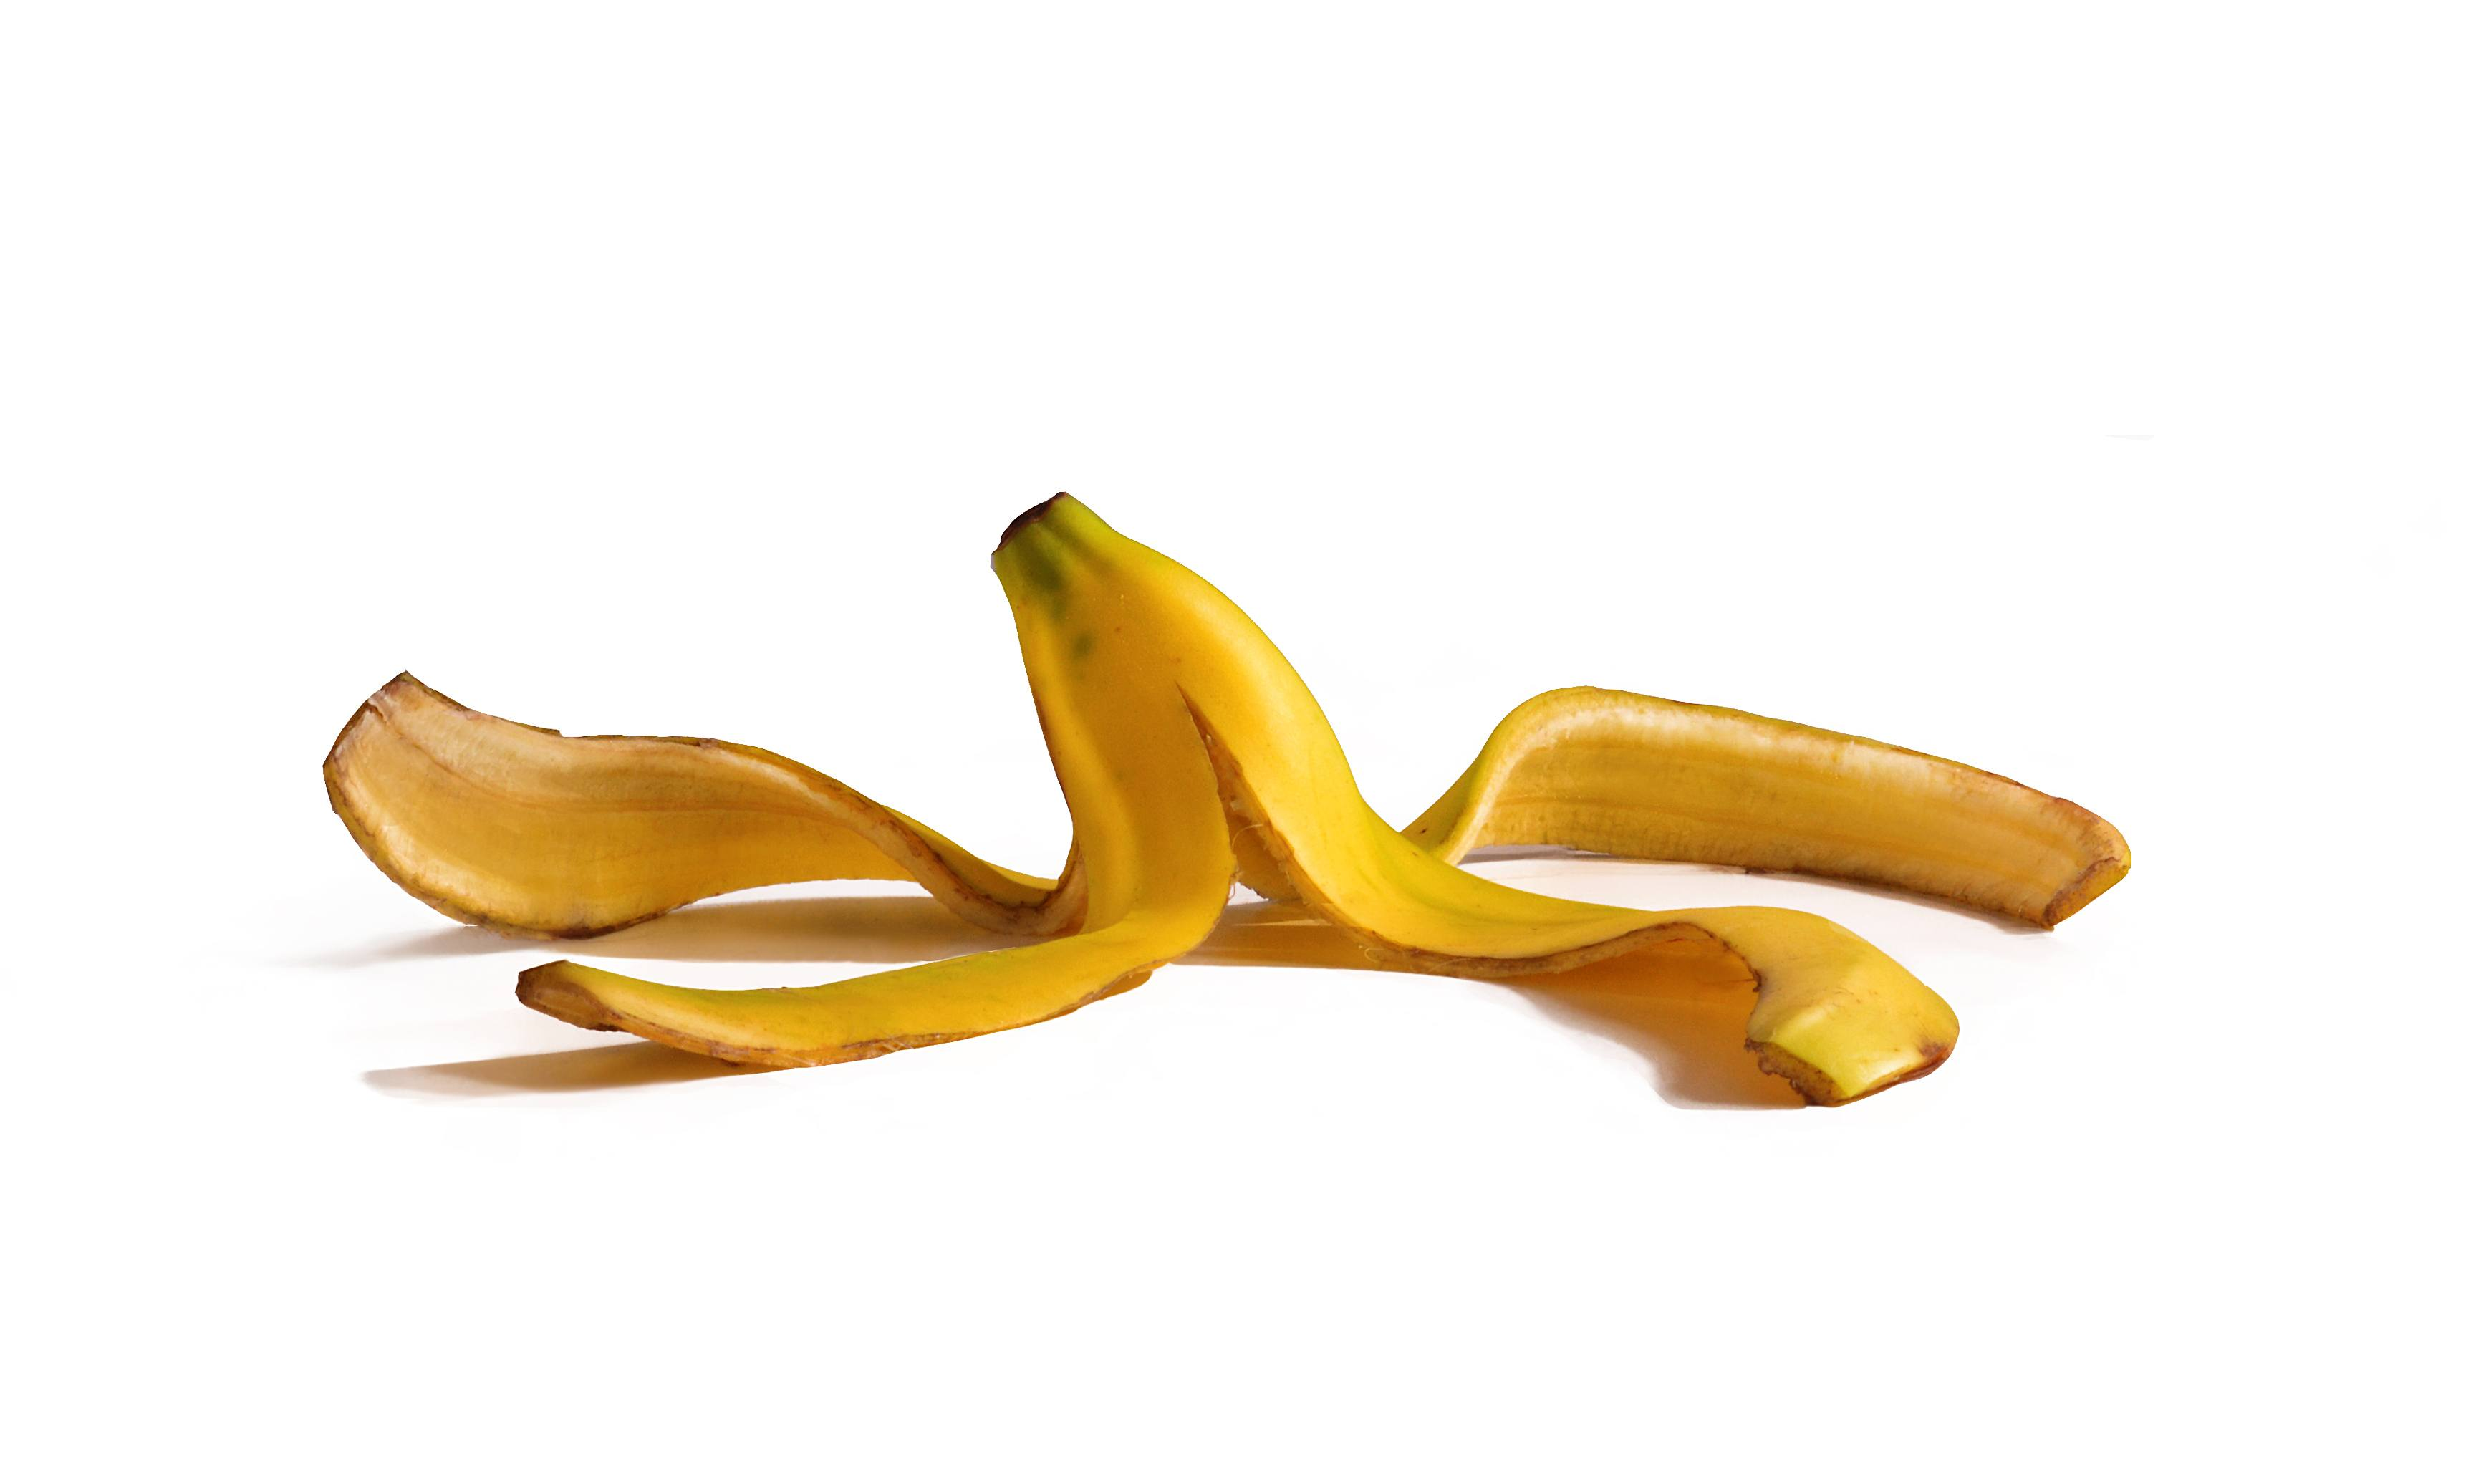 Banana peel photo